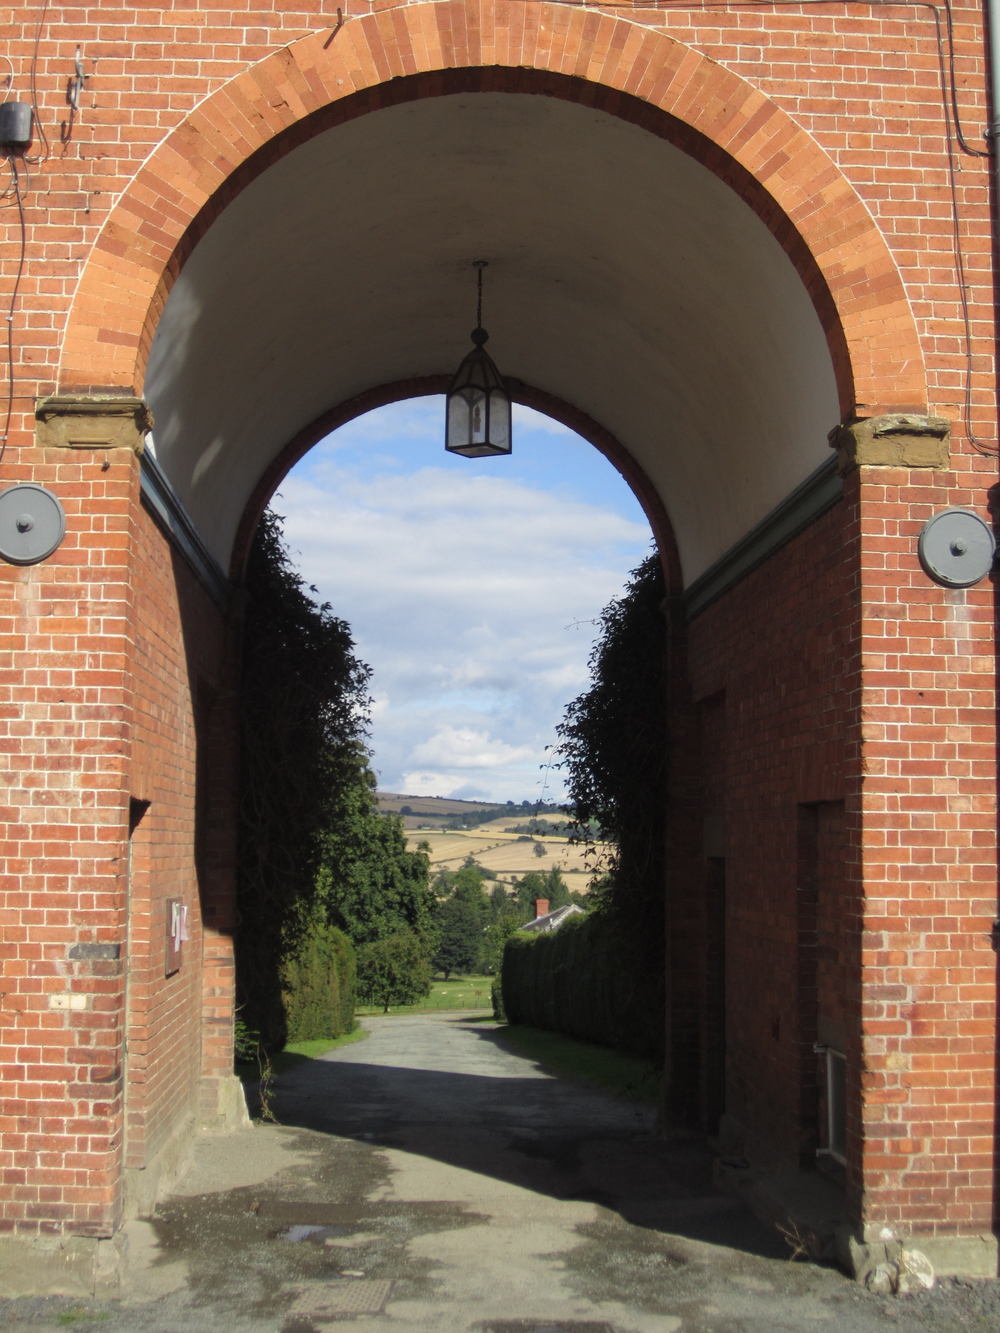 View through the arched entryway into the stable courtyard. This was one of my favorite vistas on the property. A zoomed-in view is below.